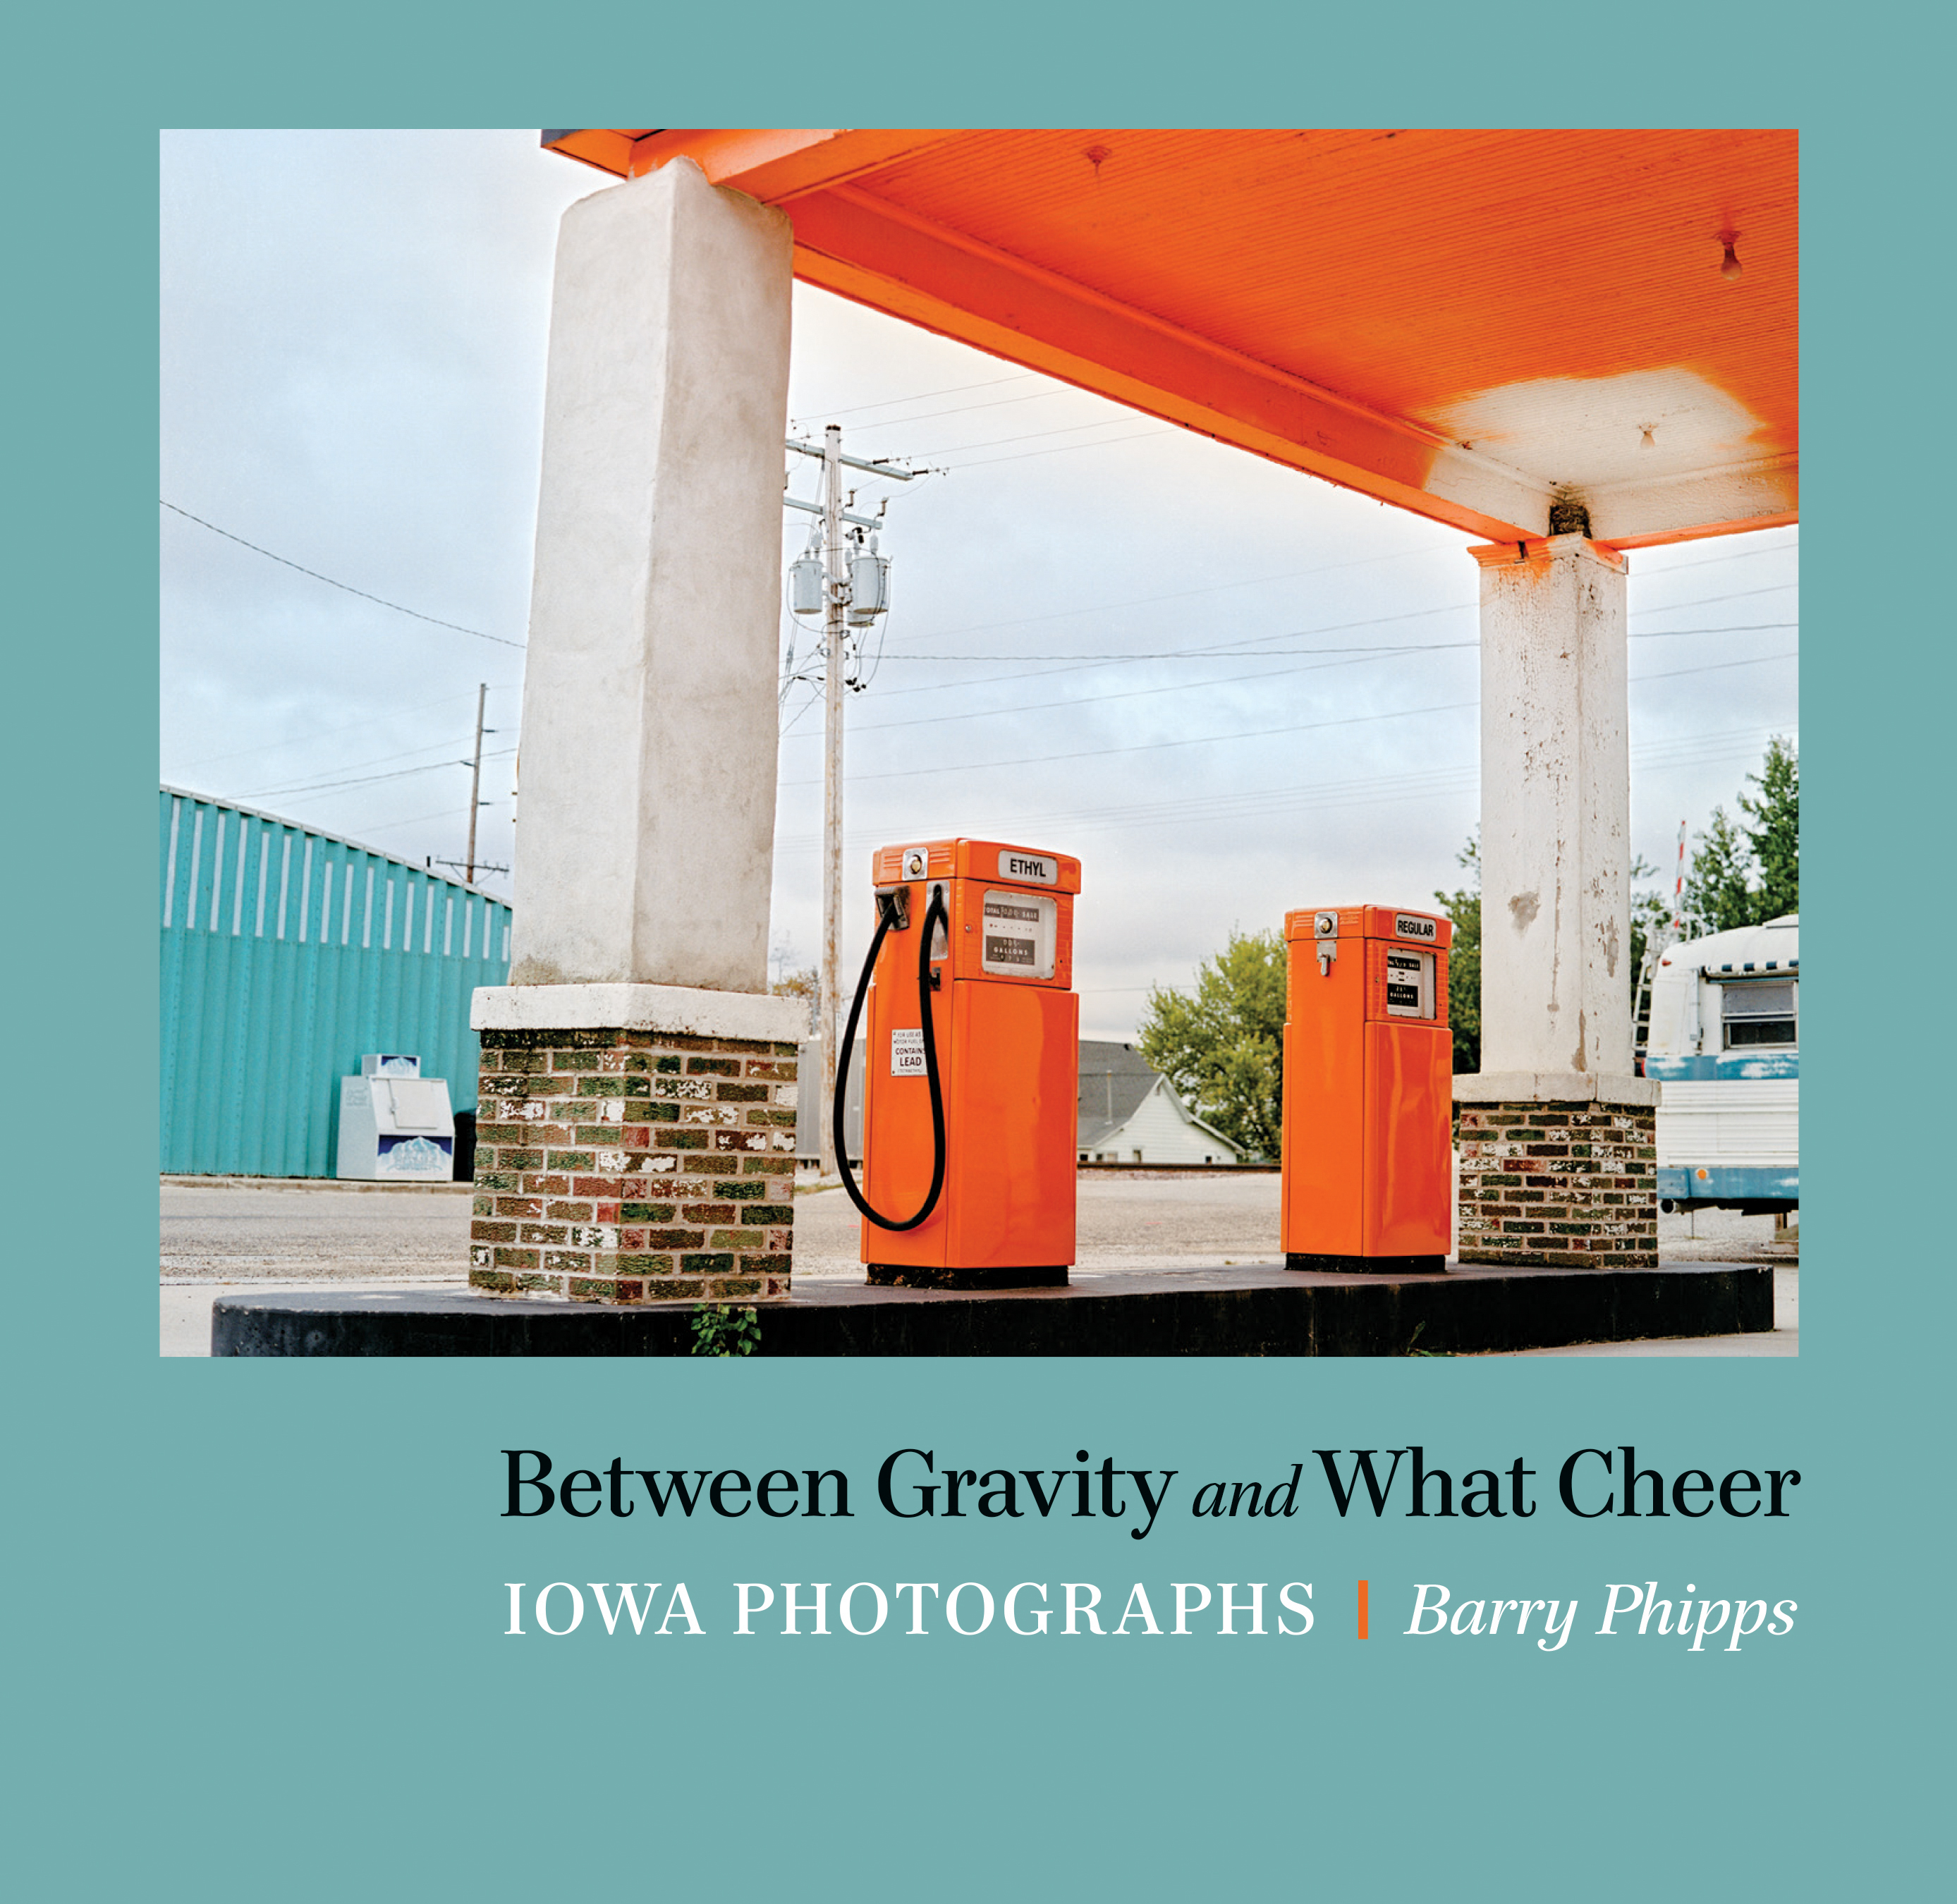 Photograph of orange gas pumps at a gas station by Barry Phipps from Between Gravity and What Cheer Iowa Photographs